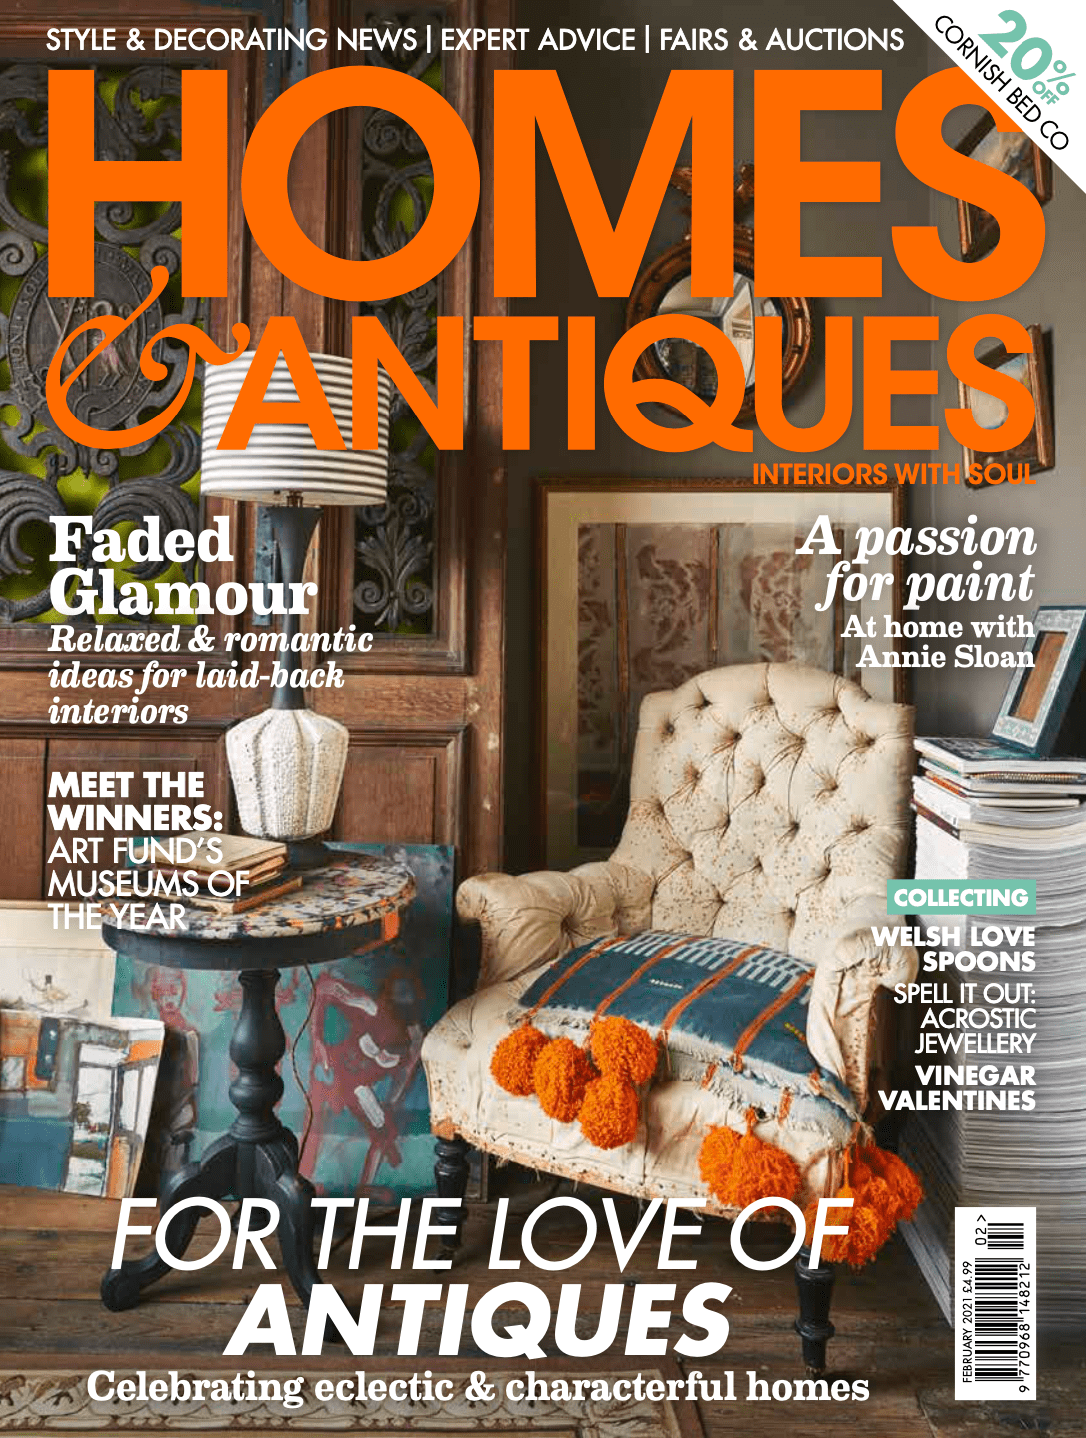 Homes & Antiques February 2021 cover